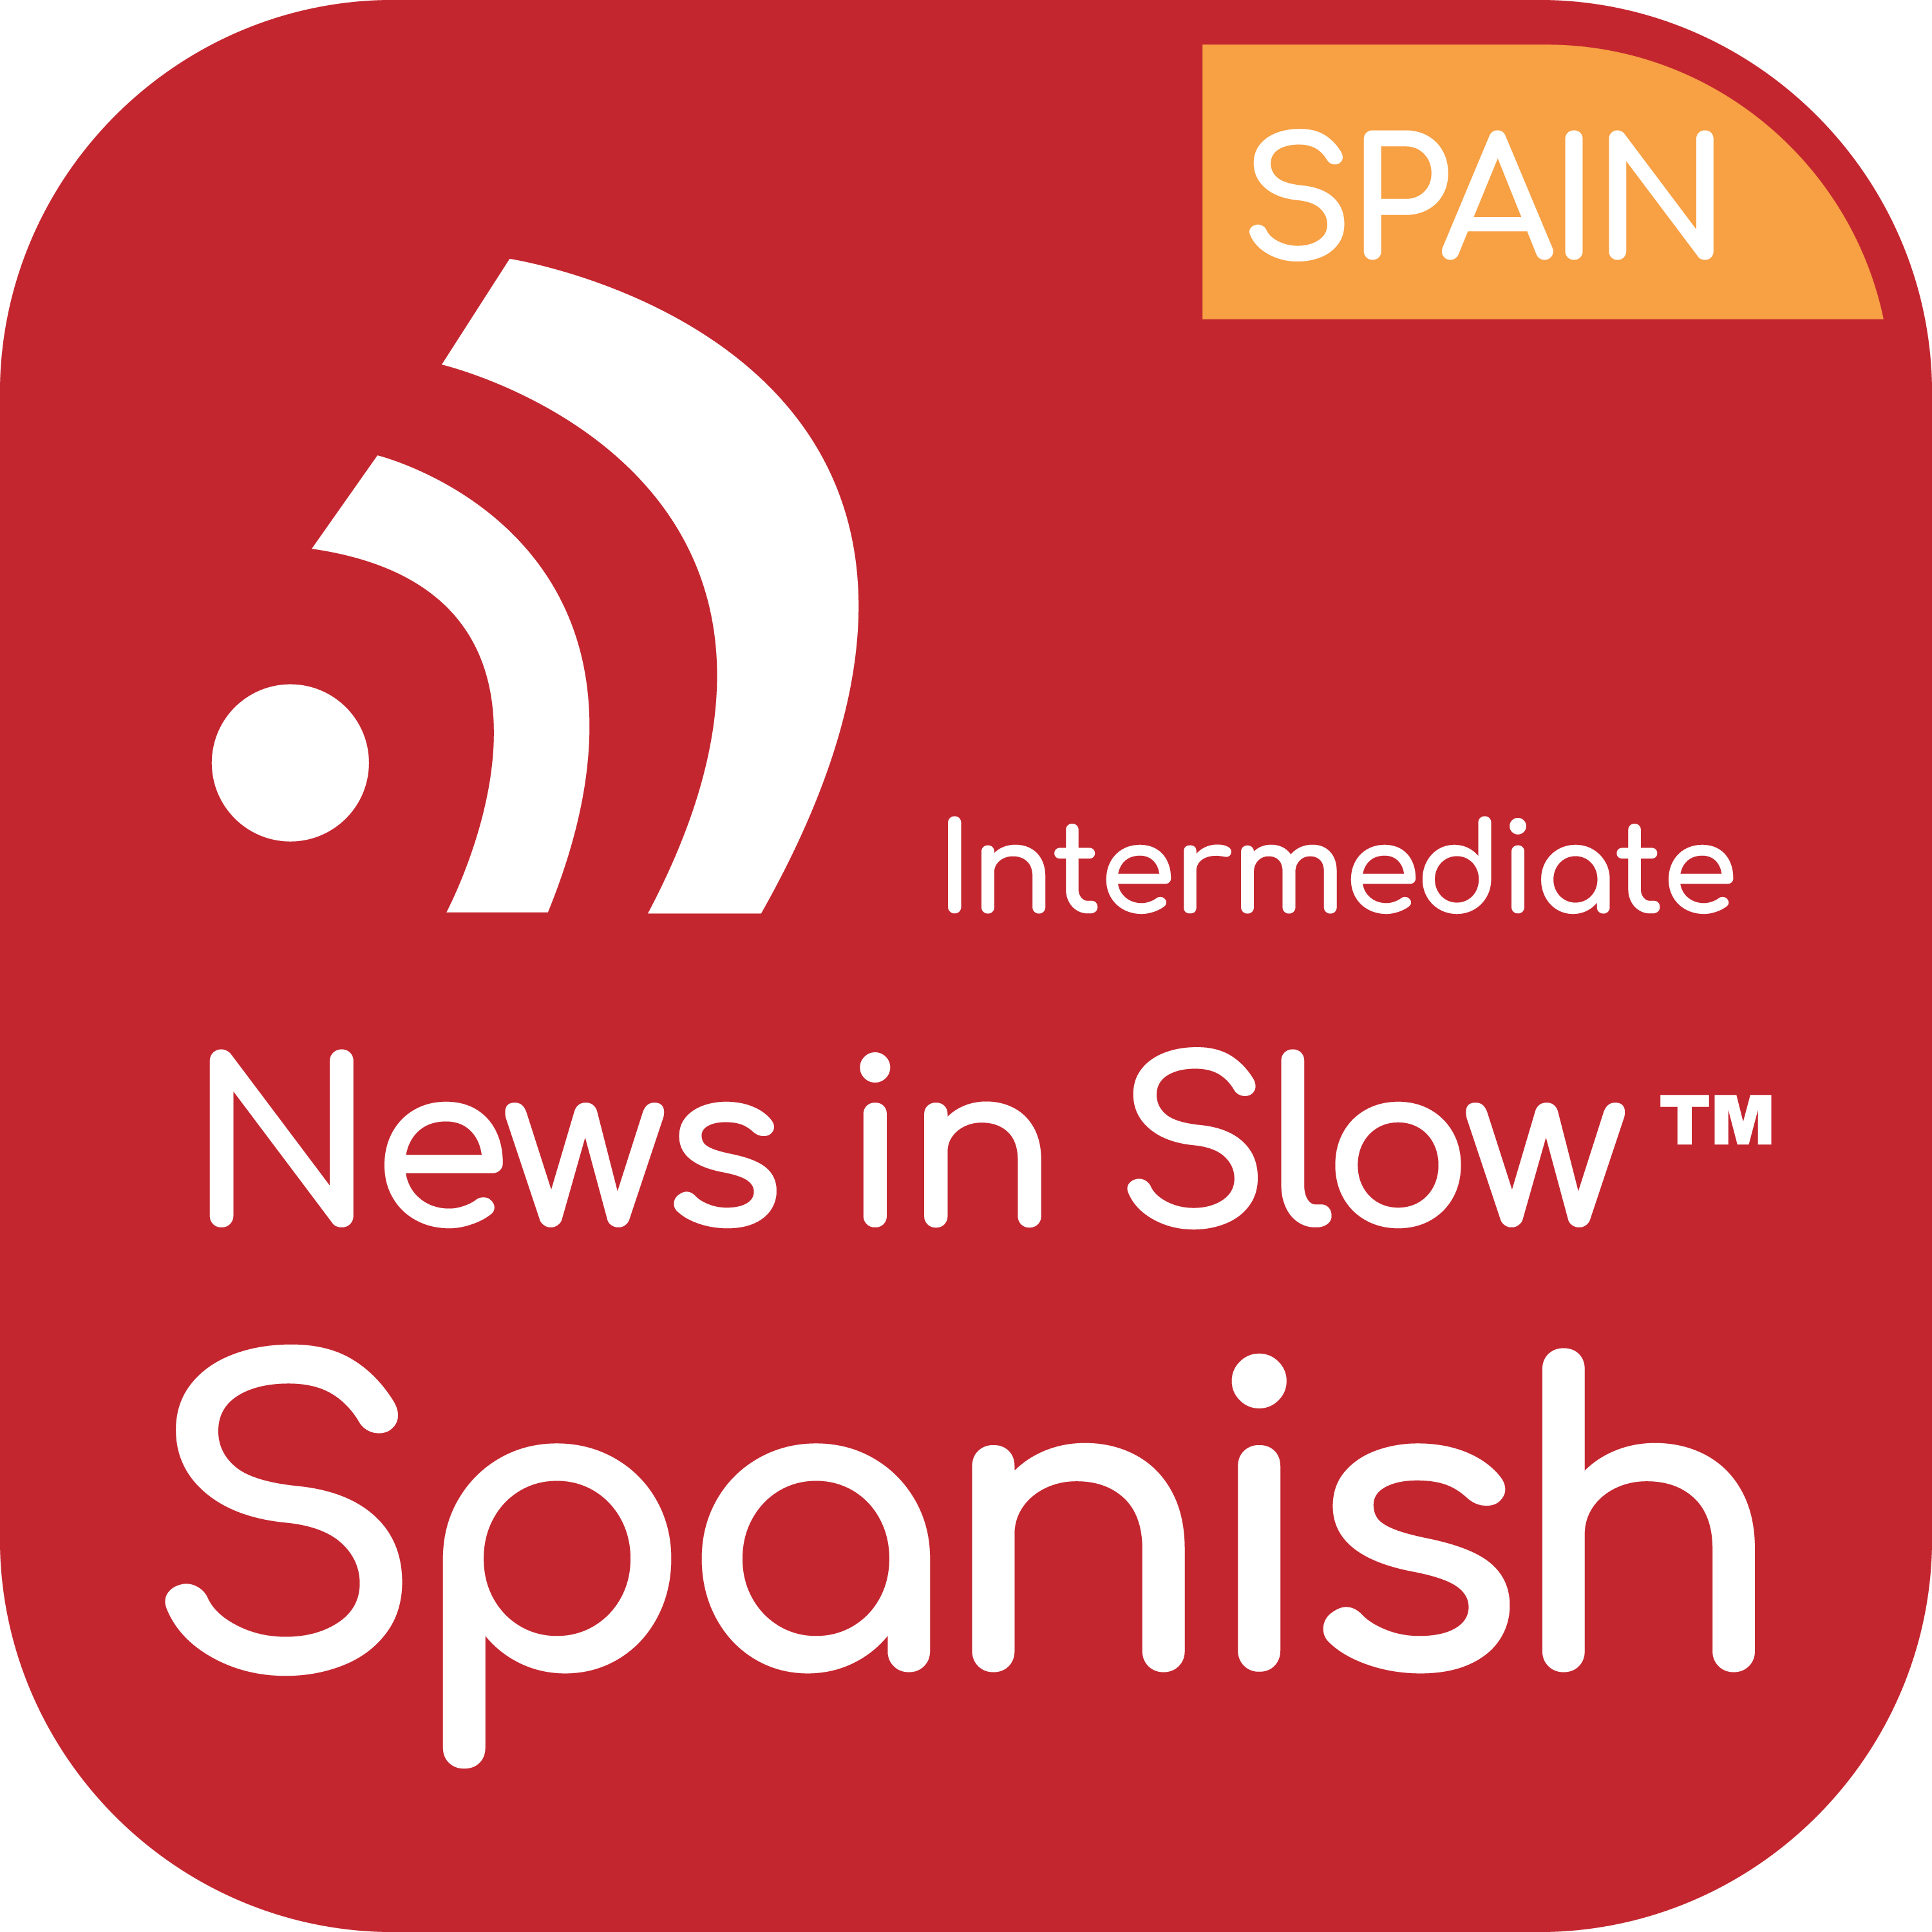 News in Slow Spanish - #560 - Study Spanish While Listening to the News